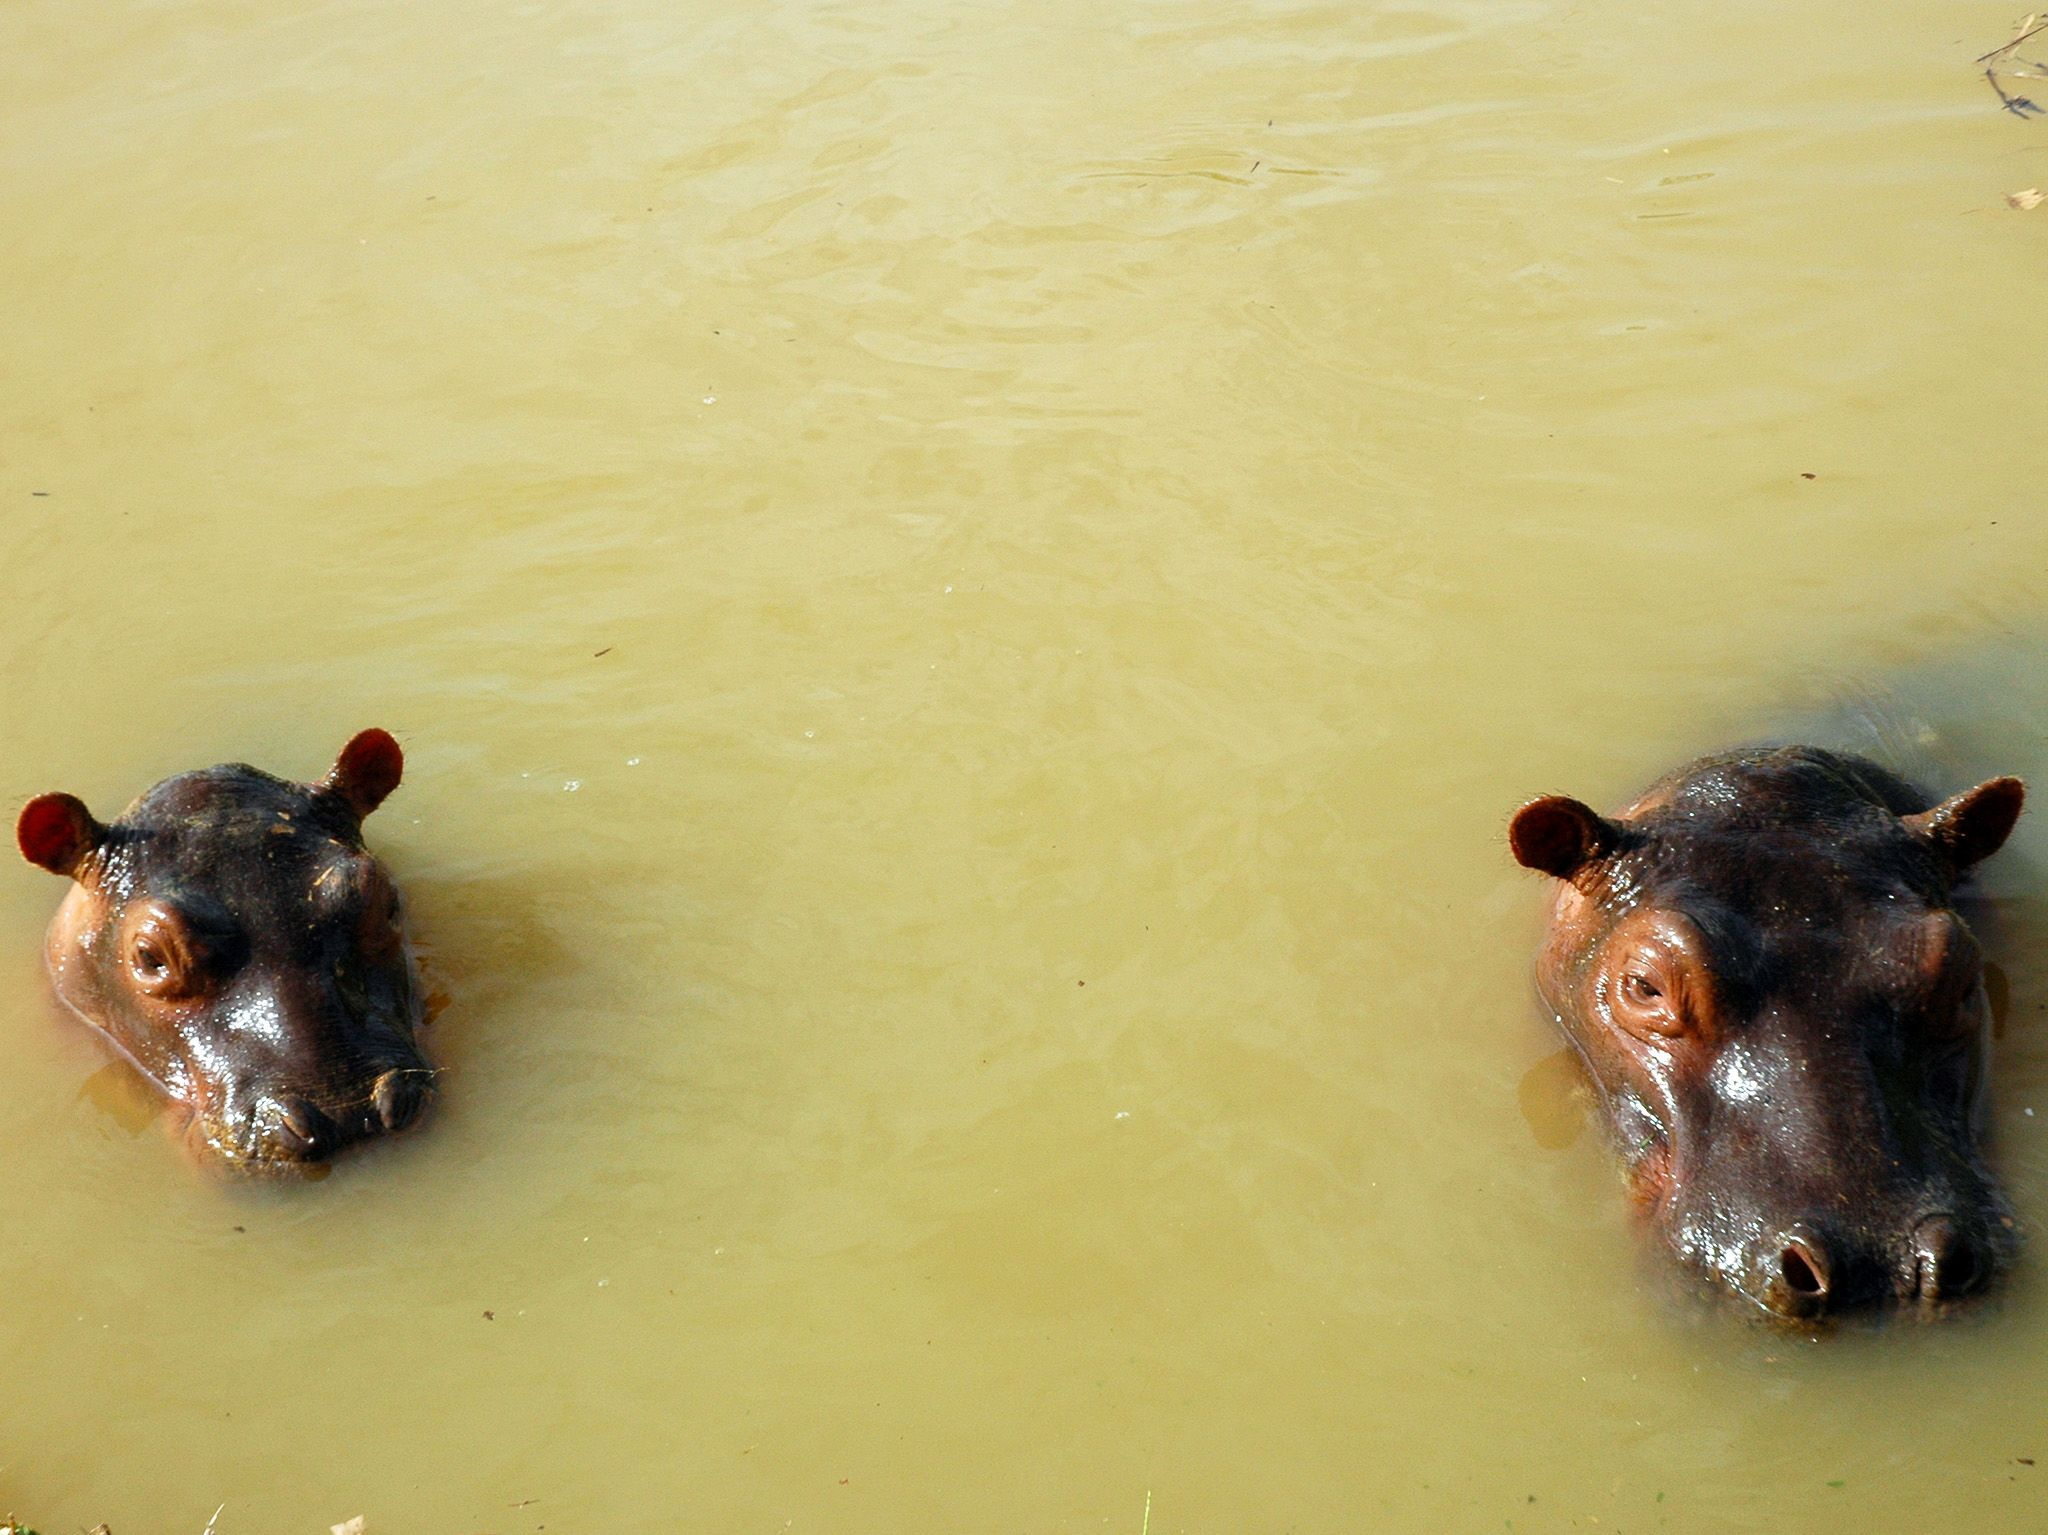 Puerto Truinfo, Colombia: Two baby hippos in a pond, poking their heads out of the water. This... [Photo of the day - August 2018]